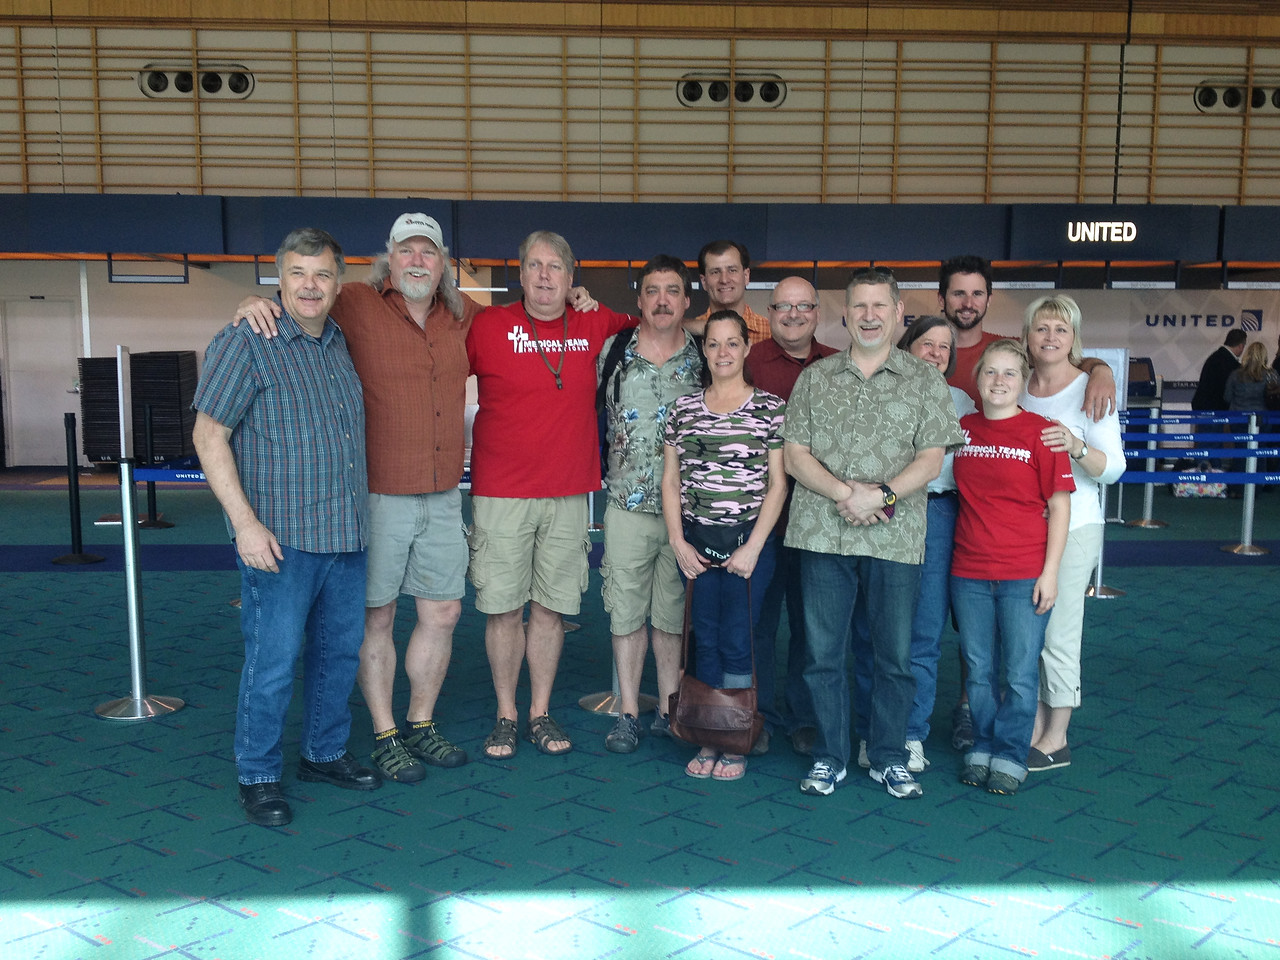 About to leave PDX on 12 May, 2012. L-R: Dennis Johnson, Dave Volke, Jim Volke, Dave Curtis, Kim Curtis, Me, Joe DiCarlo, John Tarylor, Janet Buzell, Mike Shipley, Leanne Martindale, and Judy Taylor.